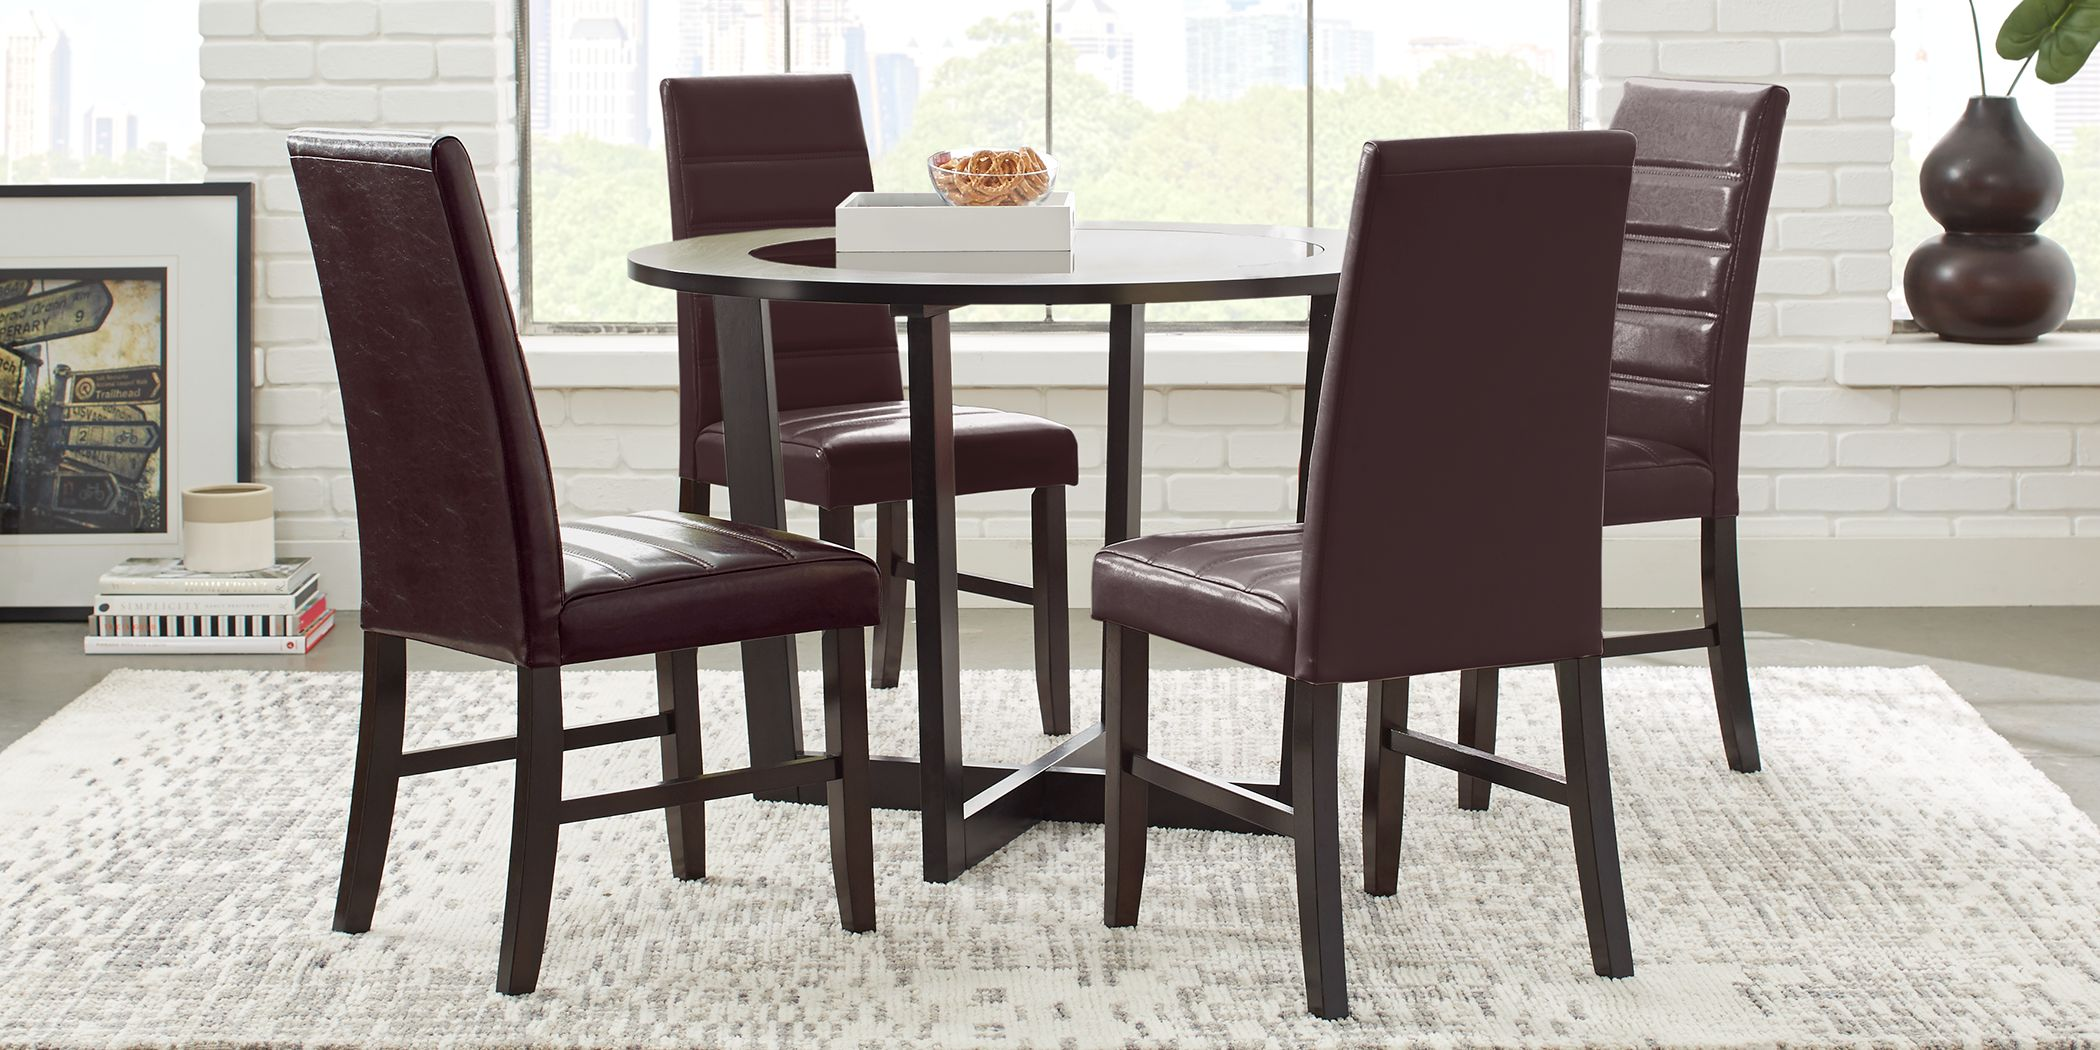 Discount Dining Room Furniture Rooms To Go Outlet